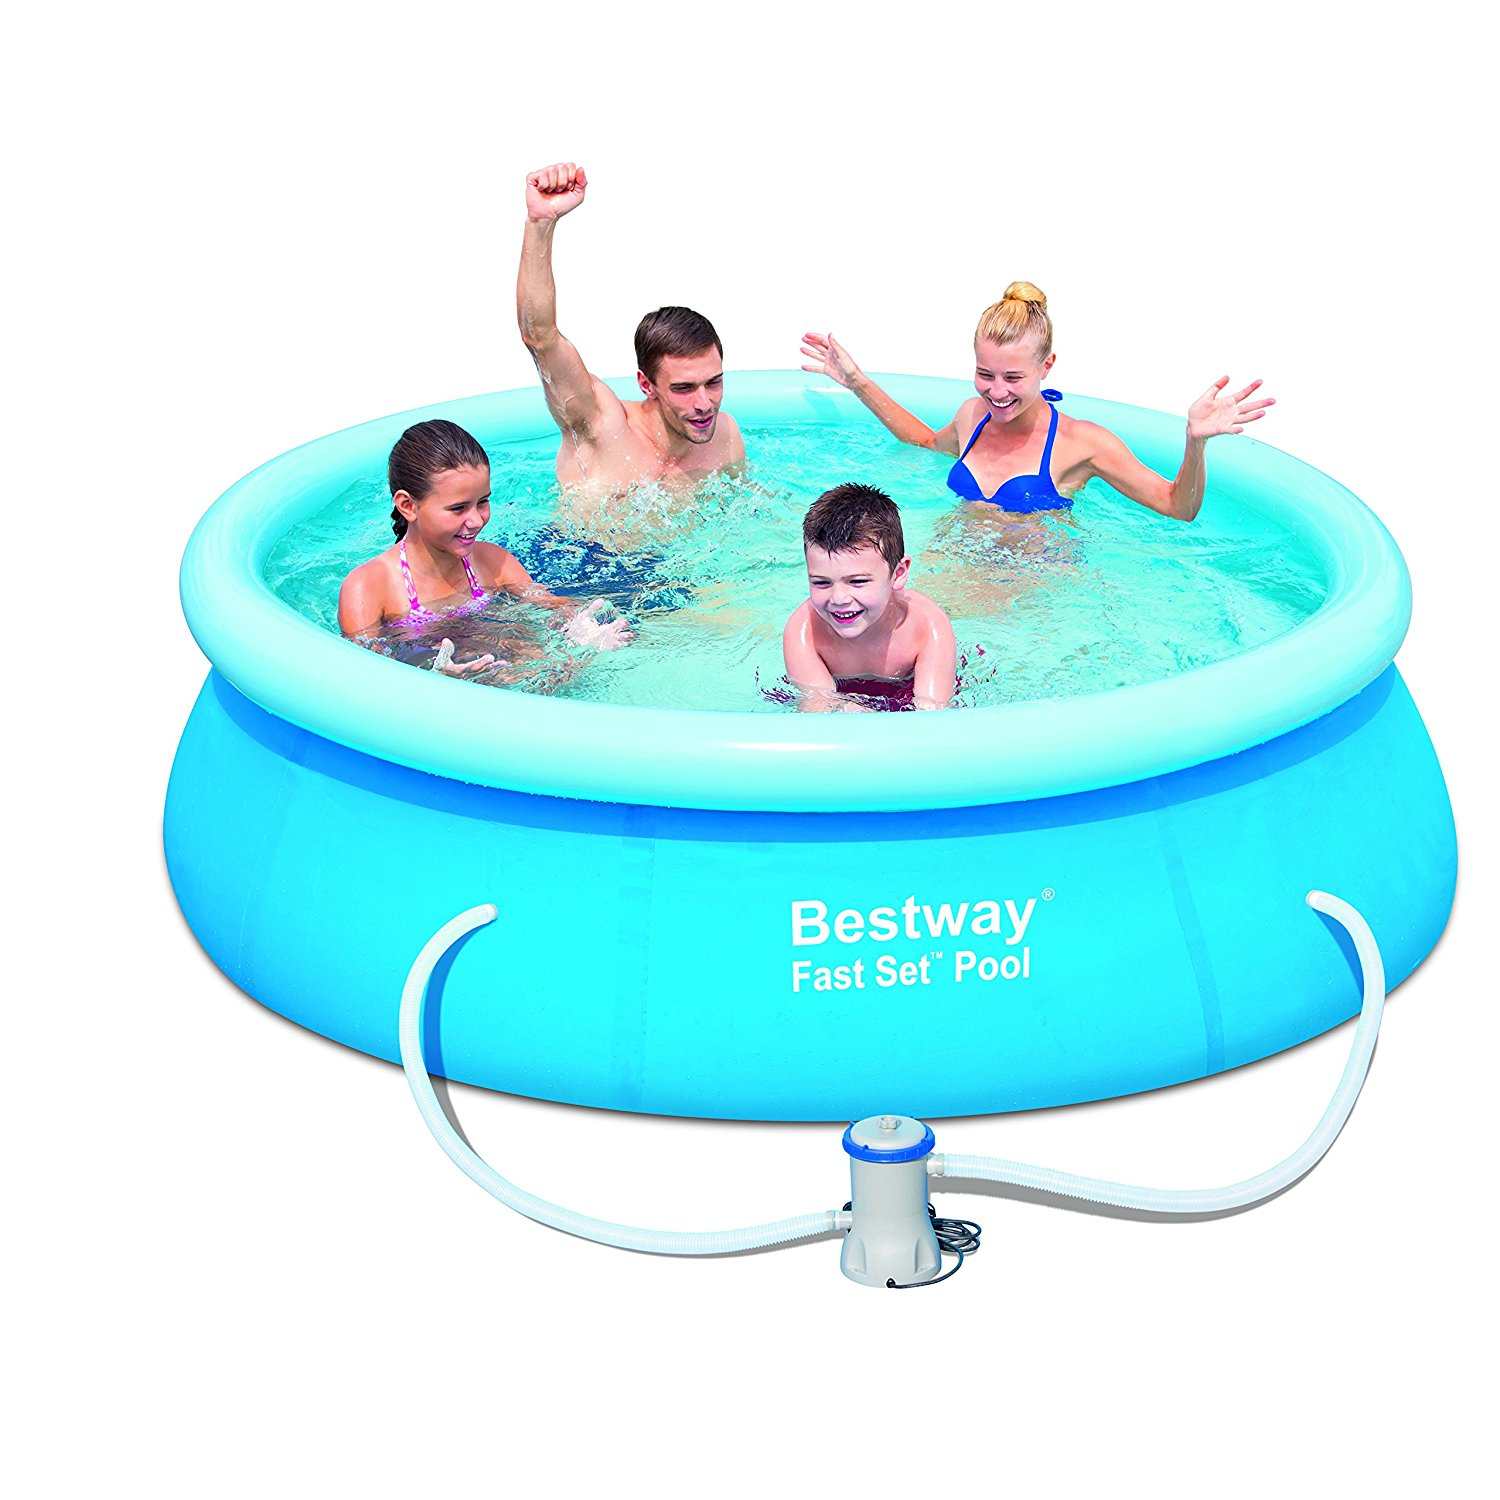 New bestway quick set up 10ft x 30 fast set pool with for Obi fast set pool